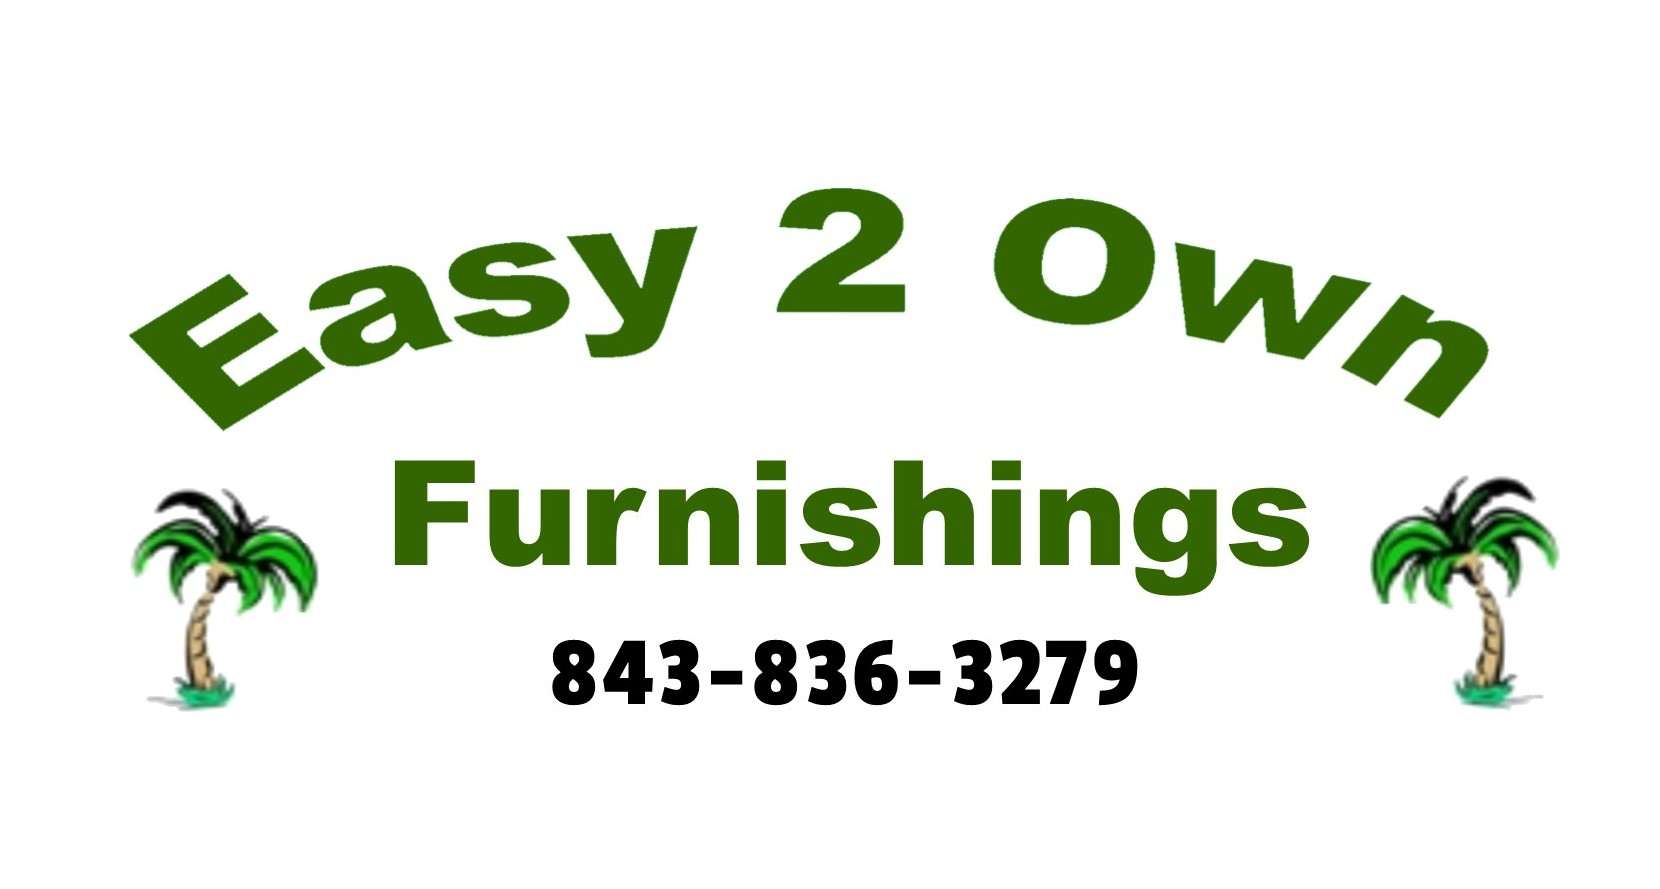 Easy 2 Own Furnishings Sticky Logo